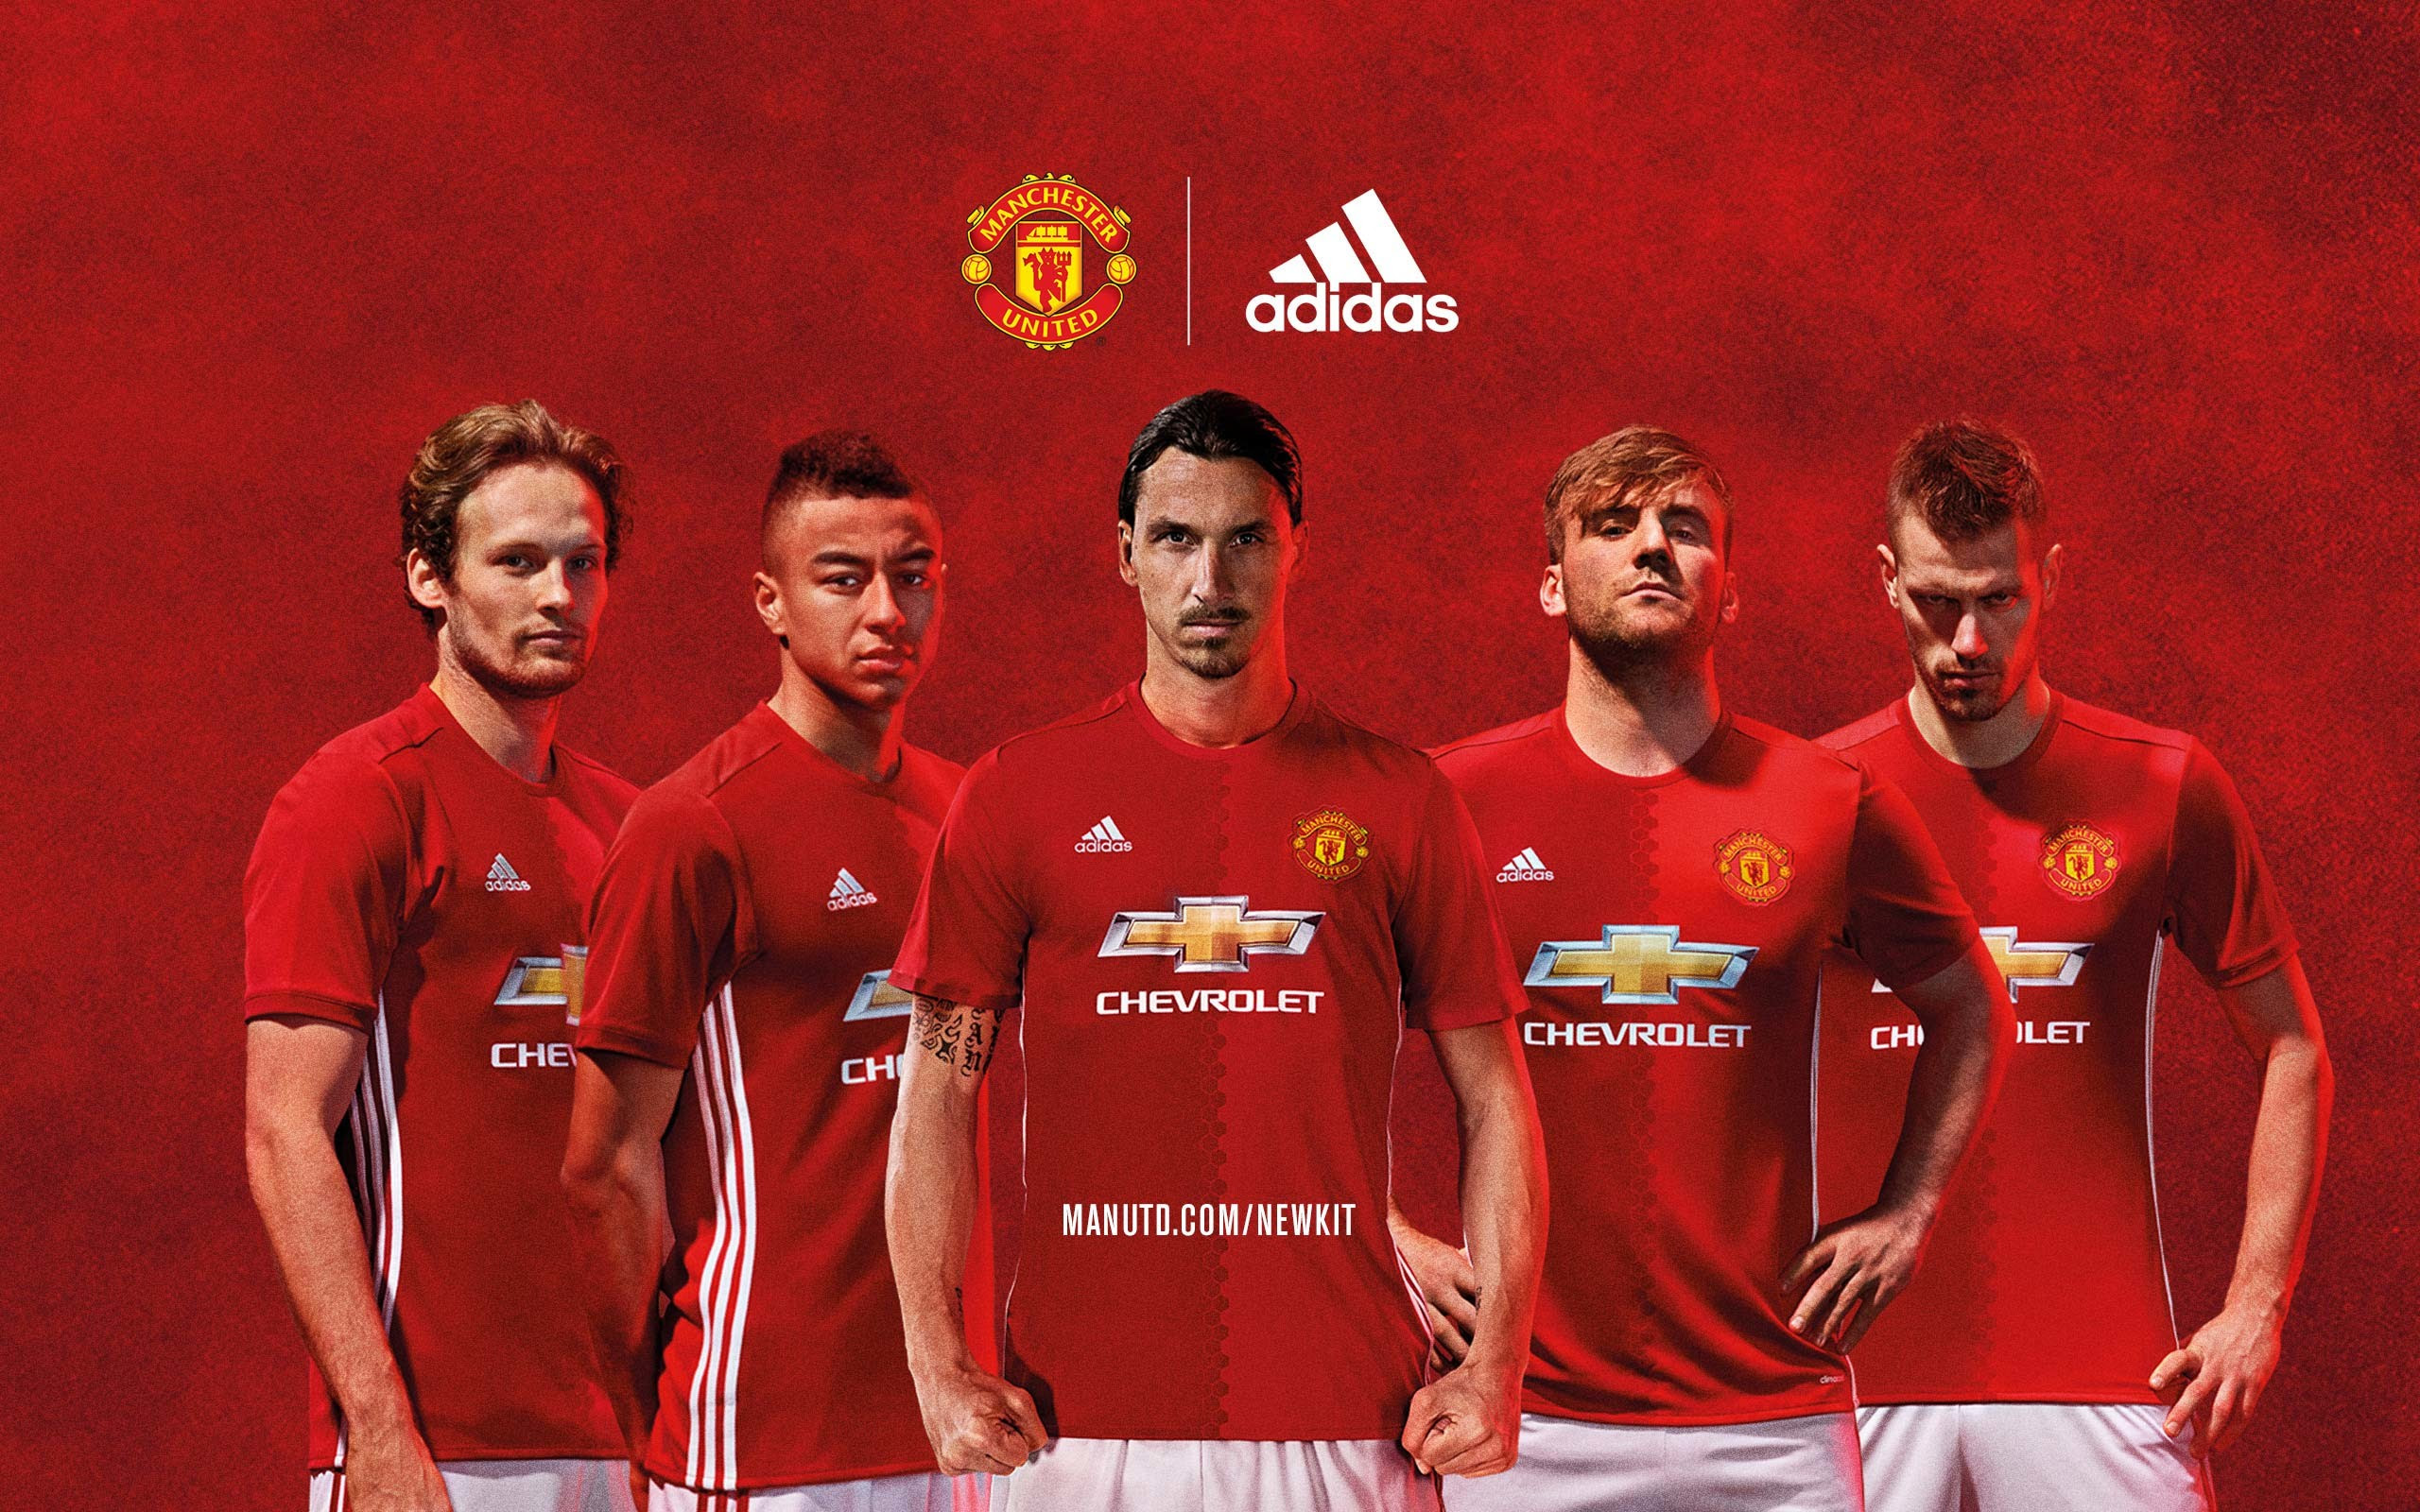 Manchester United Wallpaper Manchester United Wallpaper 2018